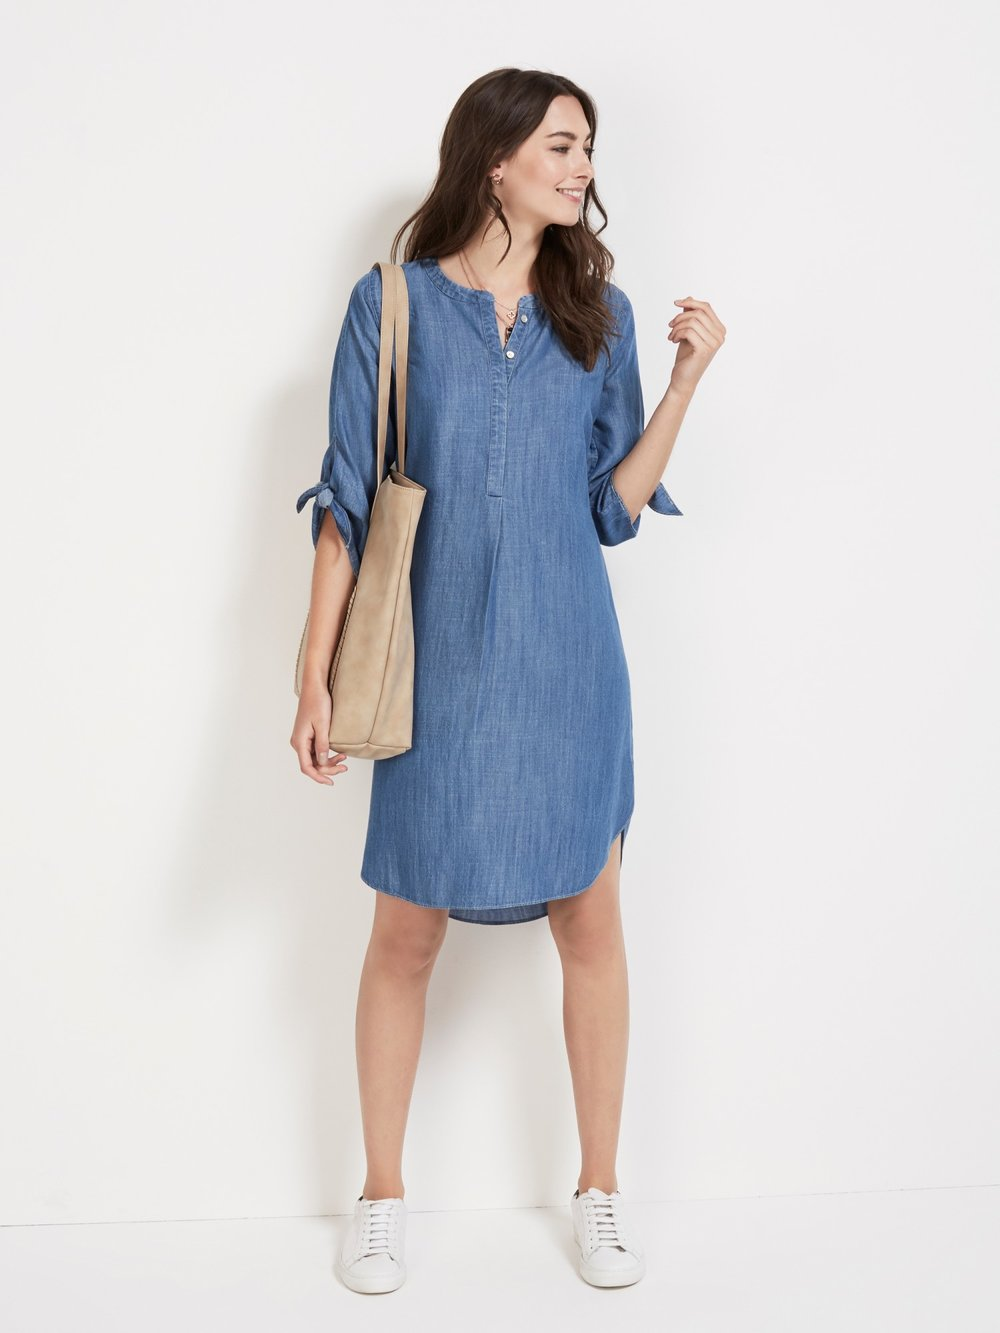 Sussan  / Chambray Tie Sleeve Dress / $149.95